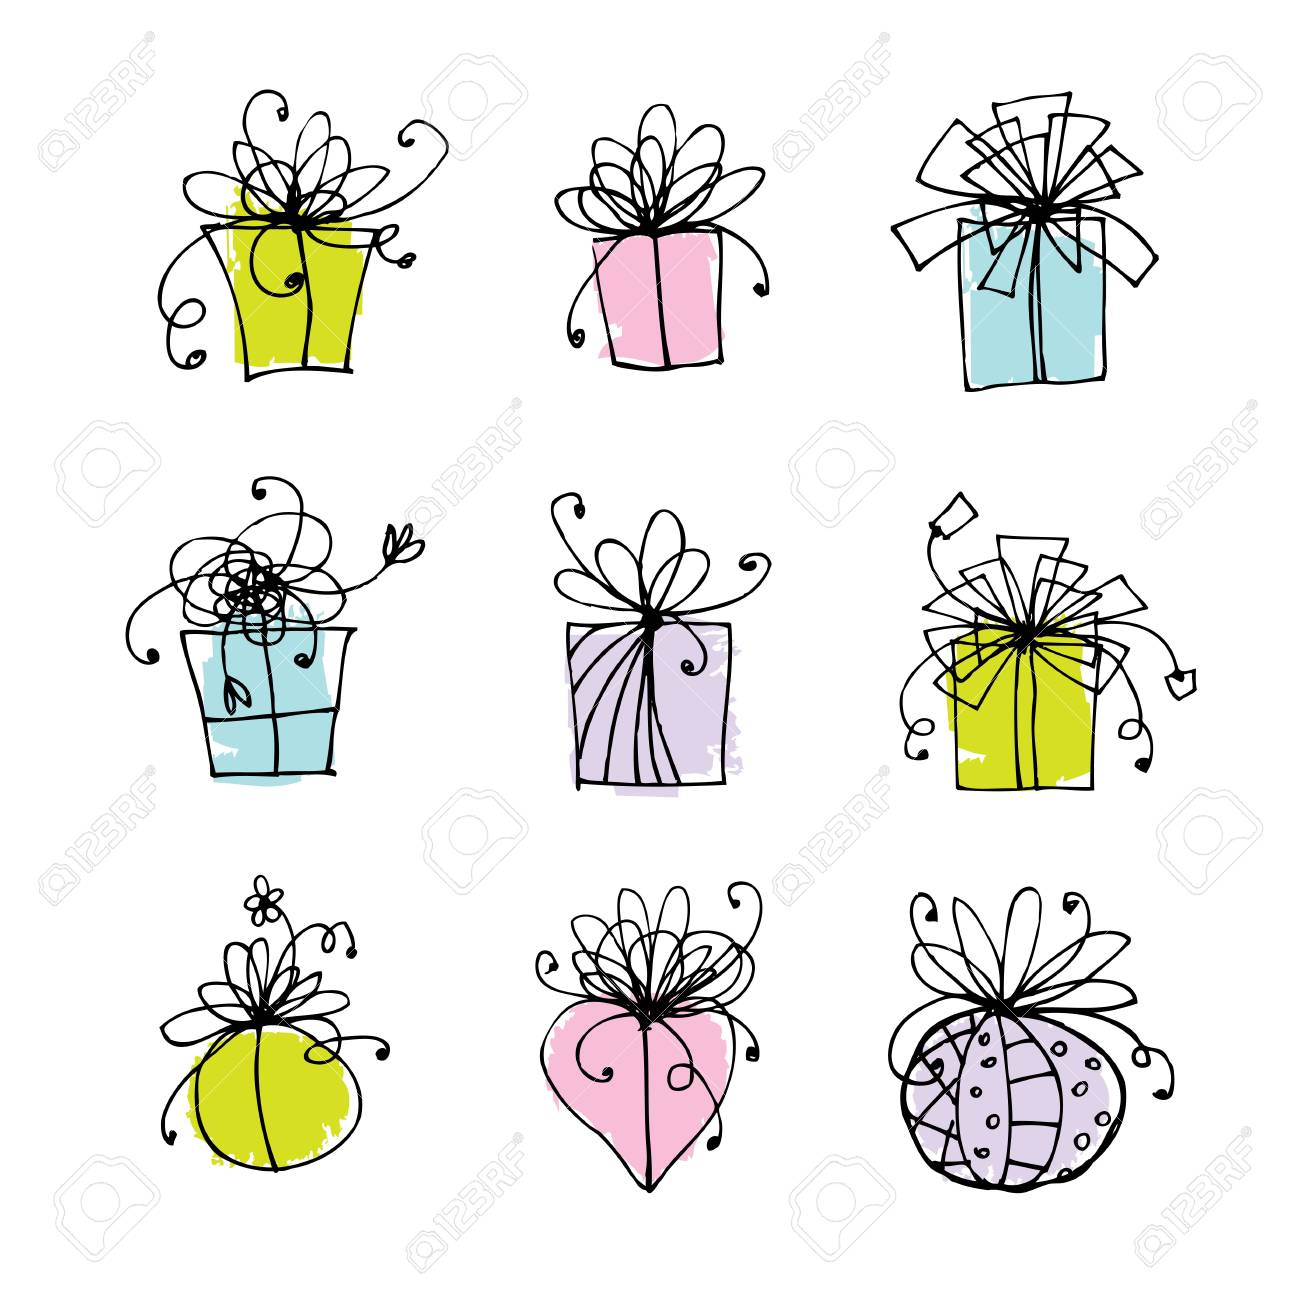 Gift box icons for your design Stock Vector - 9478437